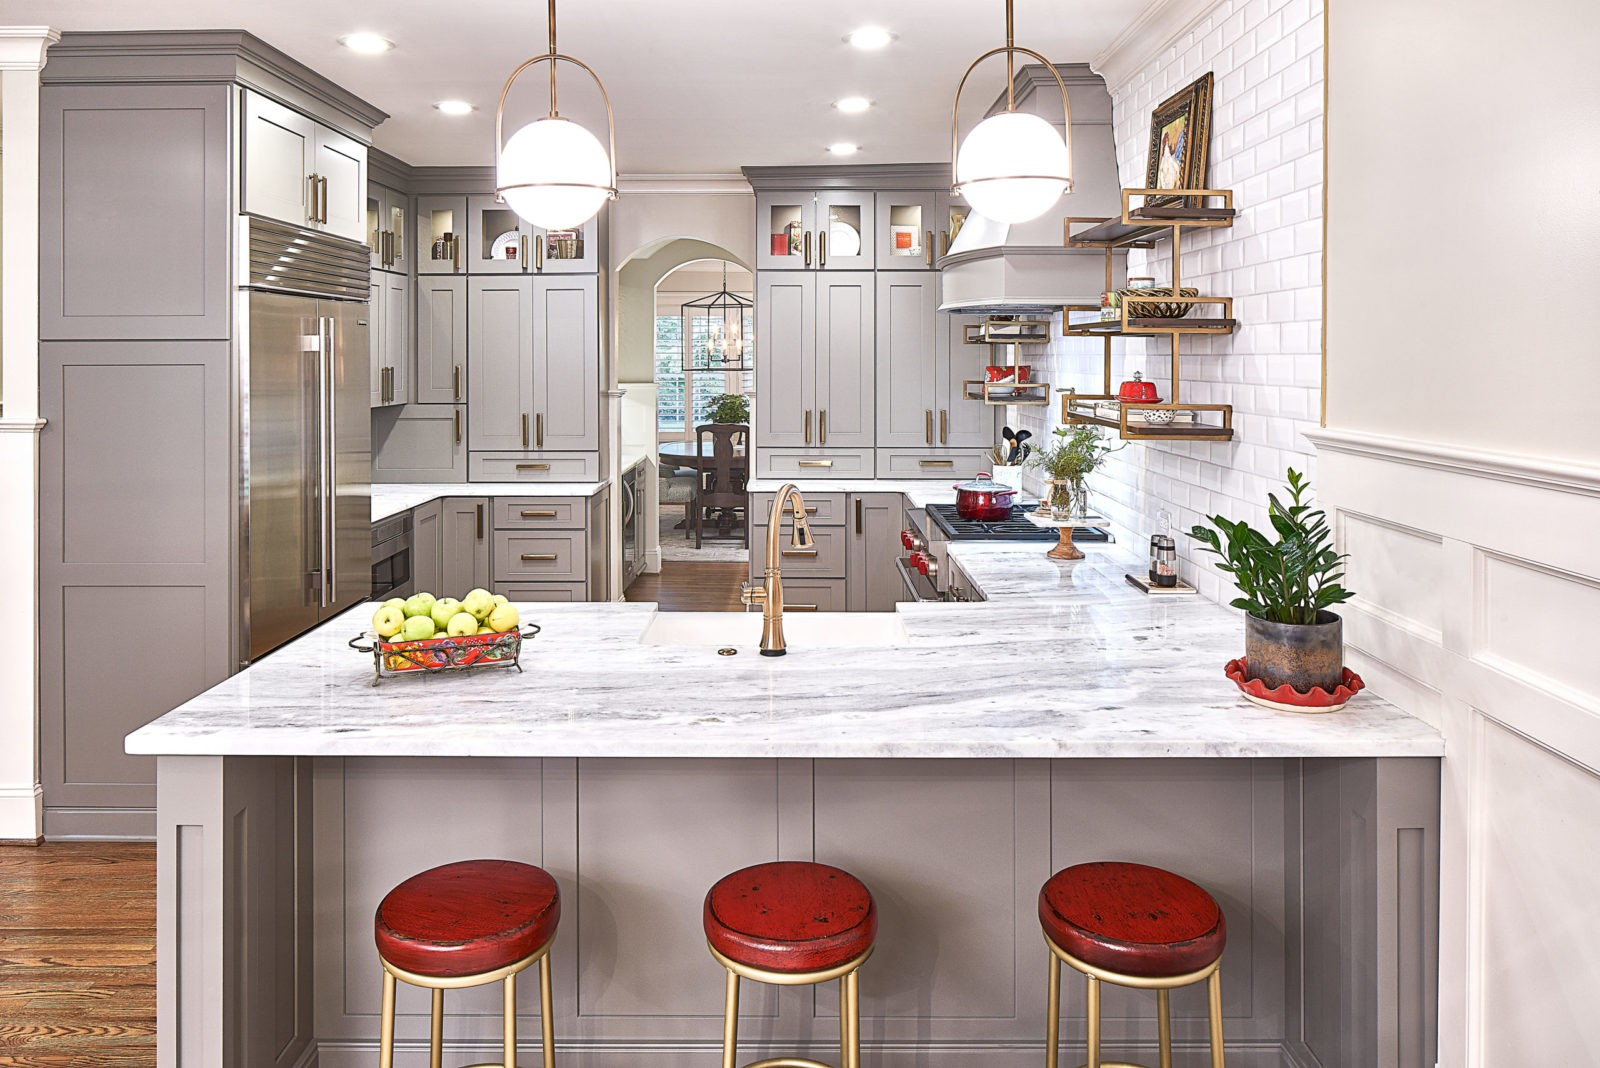 home-renovation-gray-kitchen-marble-counters